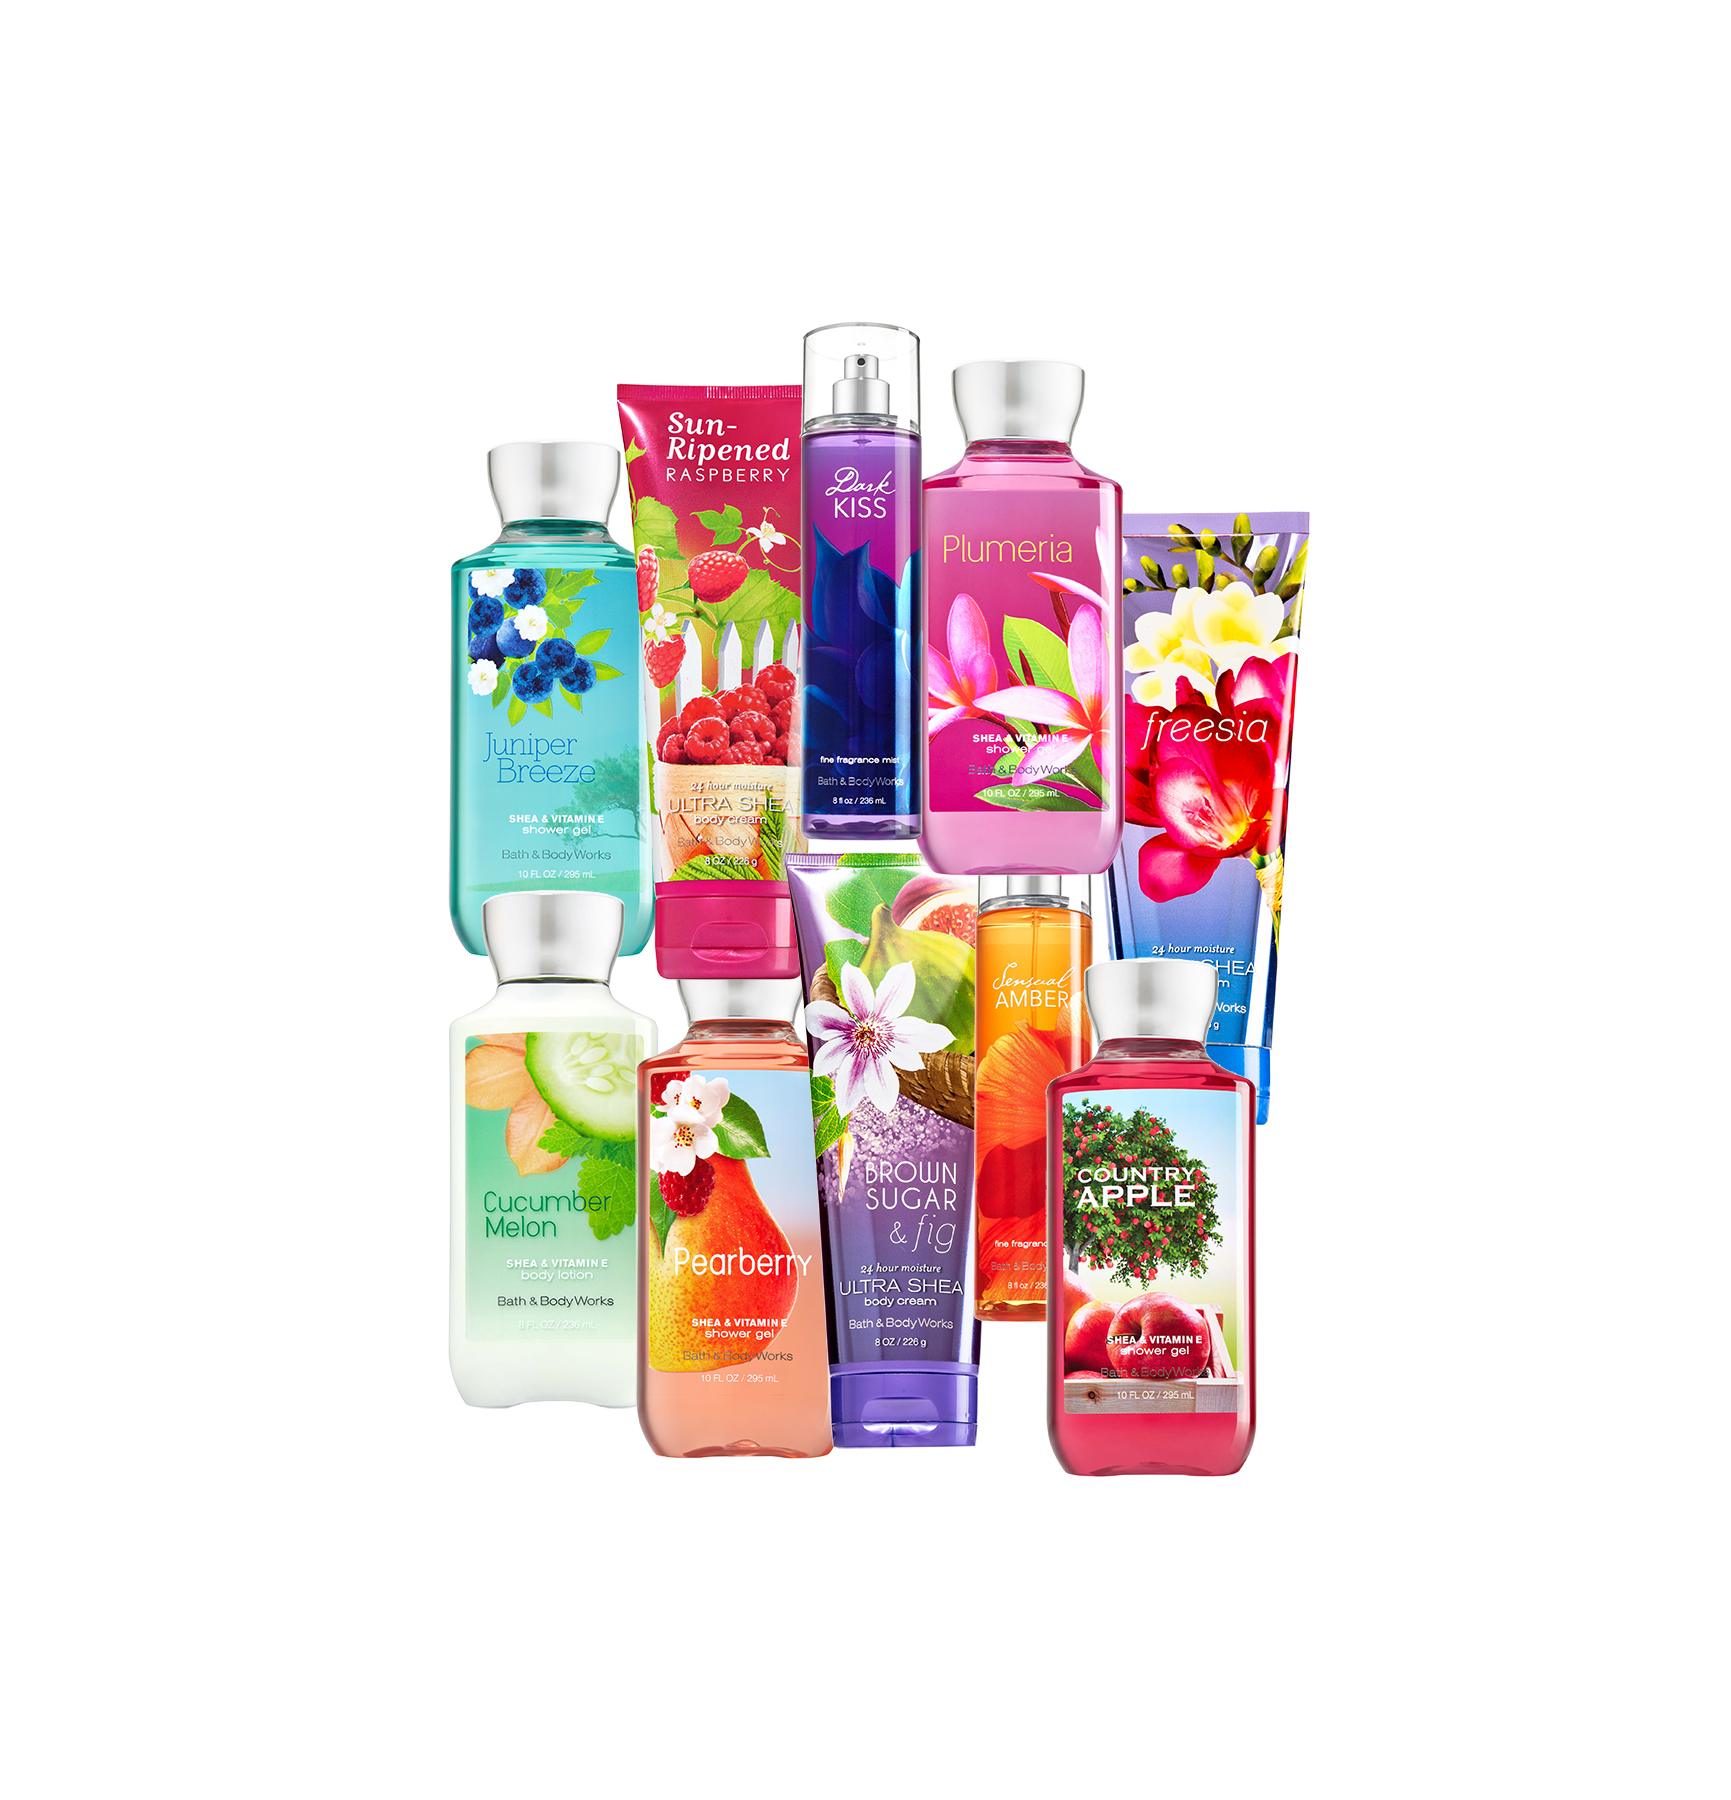 Bath & Body Works Is Re-Releasing 10 Throwback Scents From the 90s